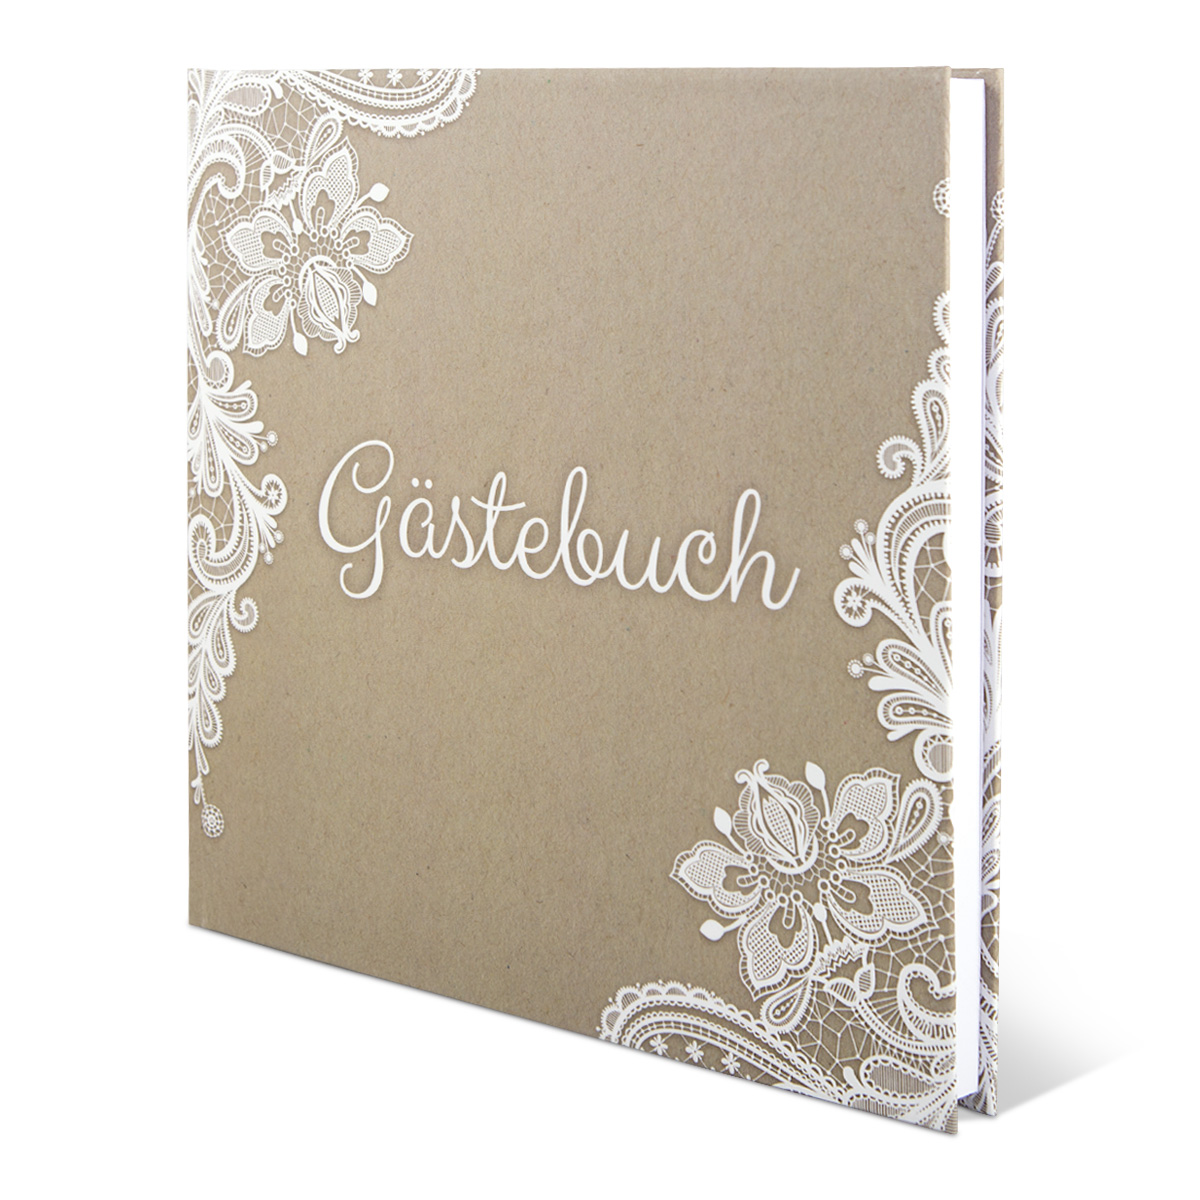 hochzeit g stebuch hardcover rustikal kraftpapier 210 x 210 mm 144 seiten ebay. Black Bedroom Furniture Sets. Home Design Ideas